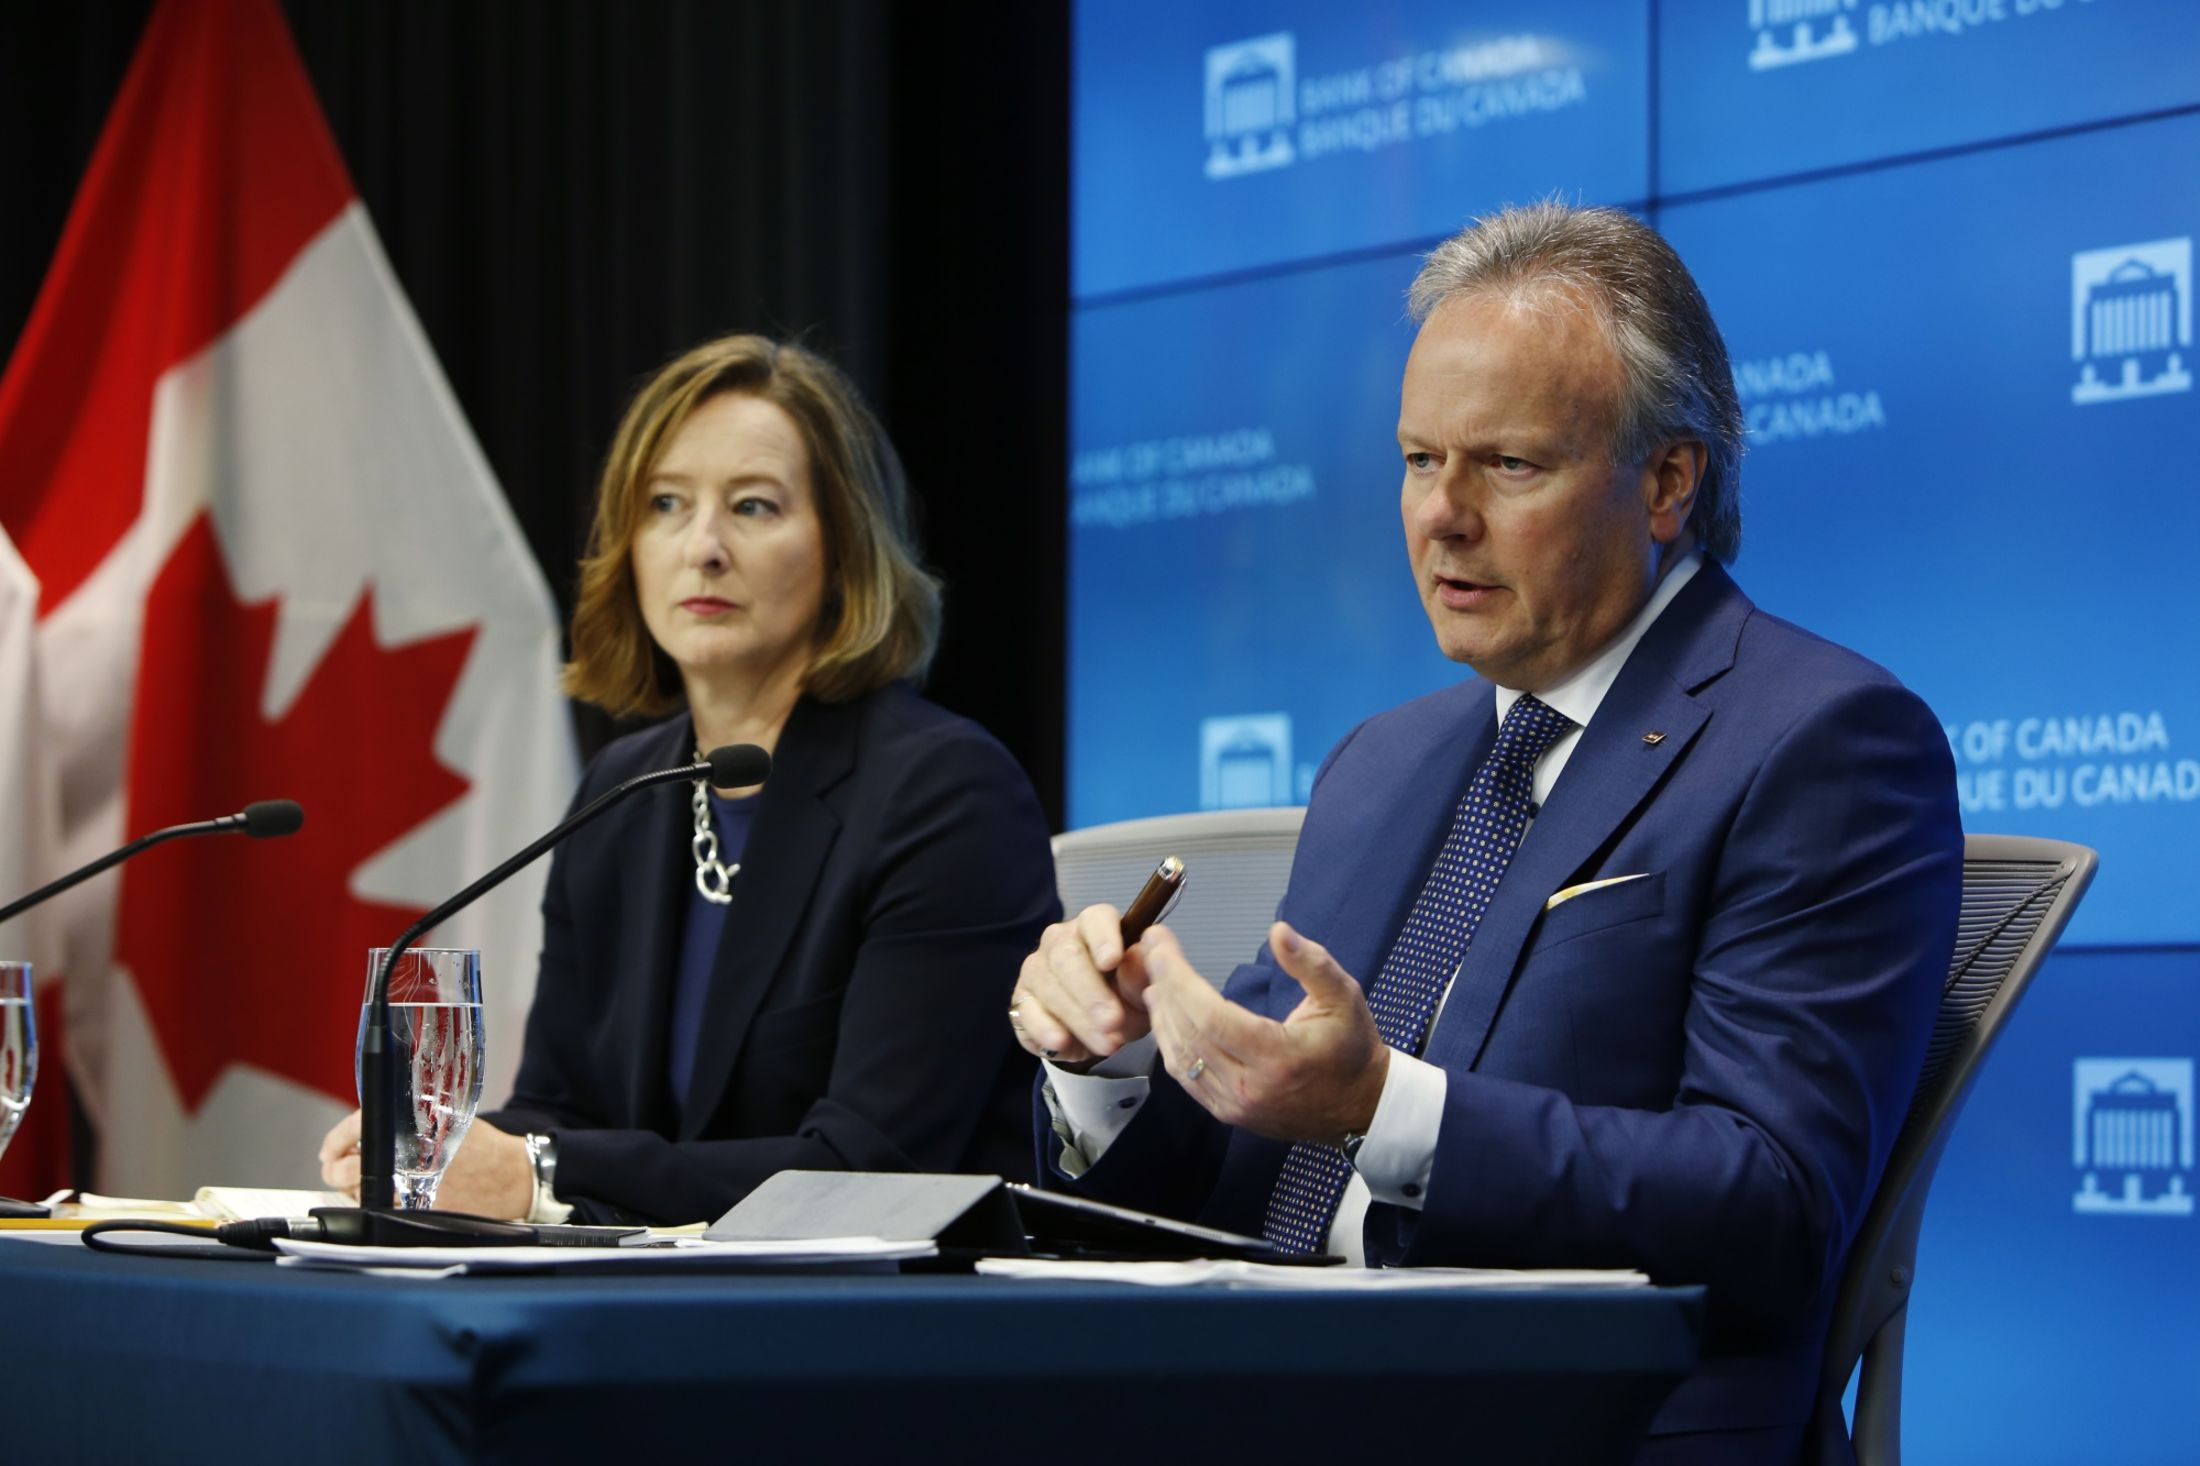 Stephen Poloz and Carolyn Wilkins at a press conference on Wednesday.